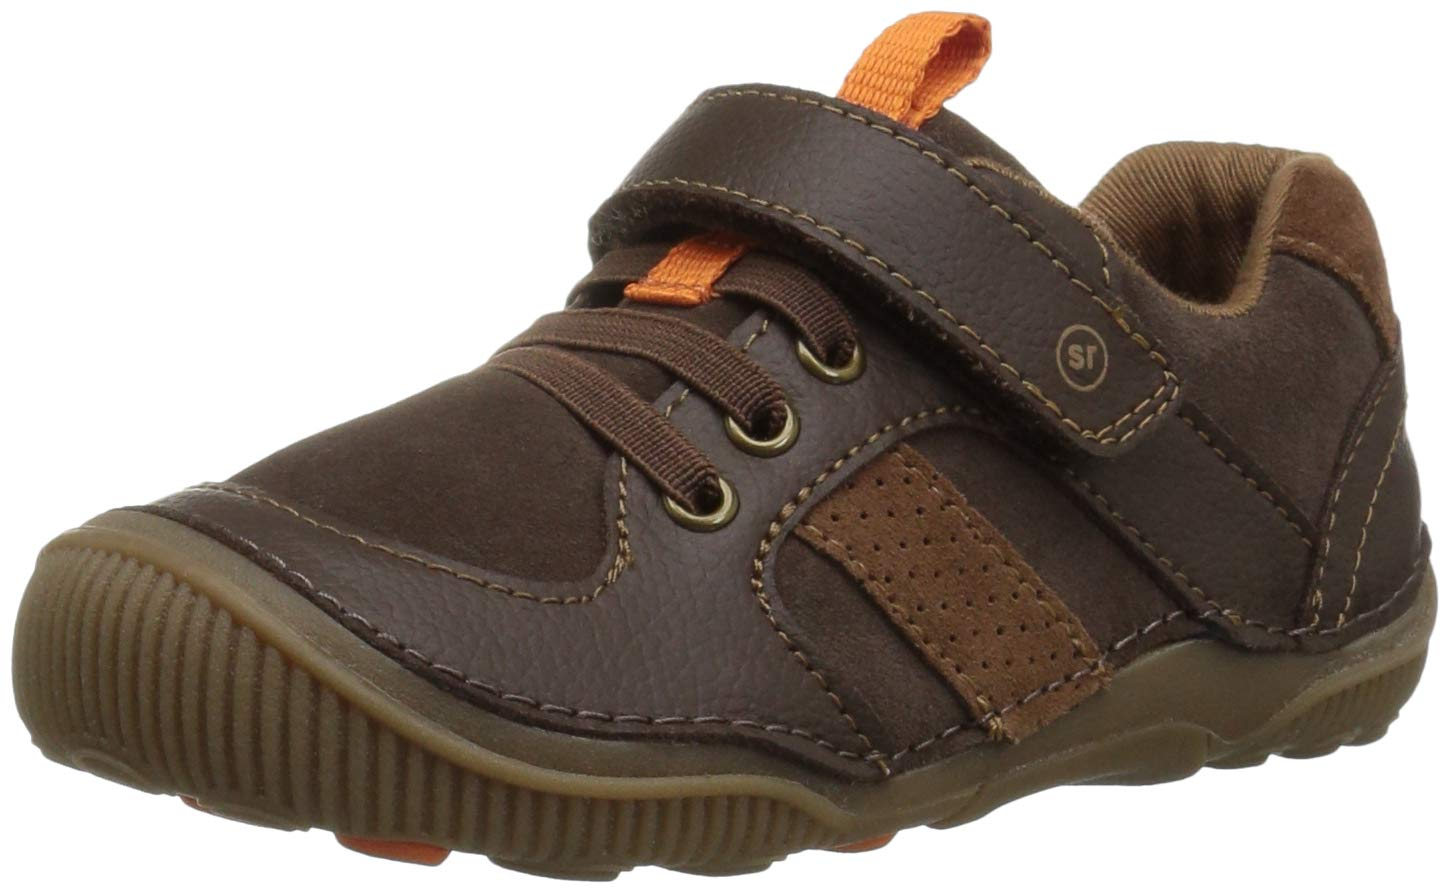 Stride Rite Boys' SRT Wes Casual Sneaker, Brown, 7 M US Toddler by Stride Rite